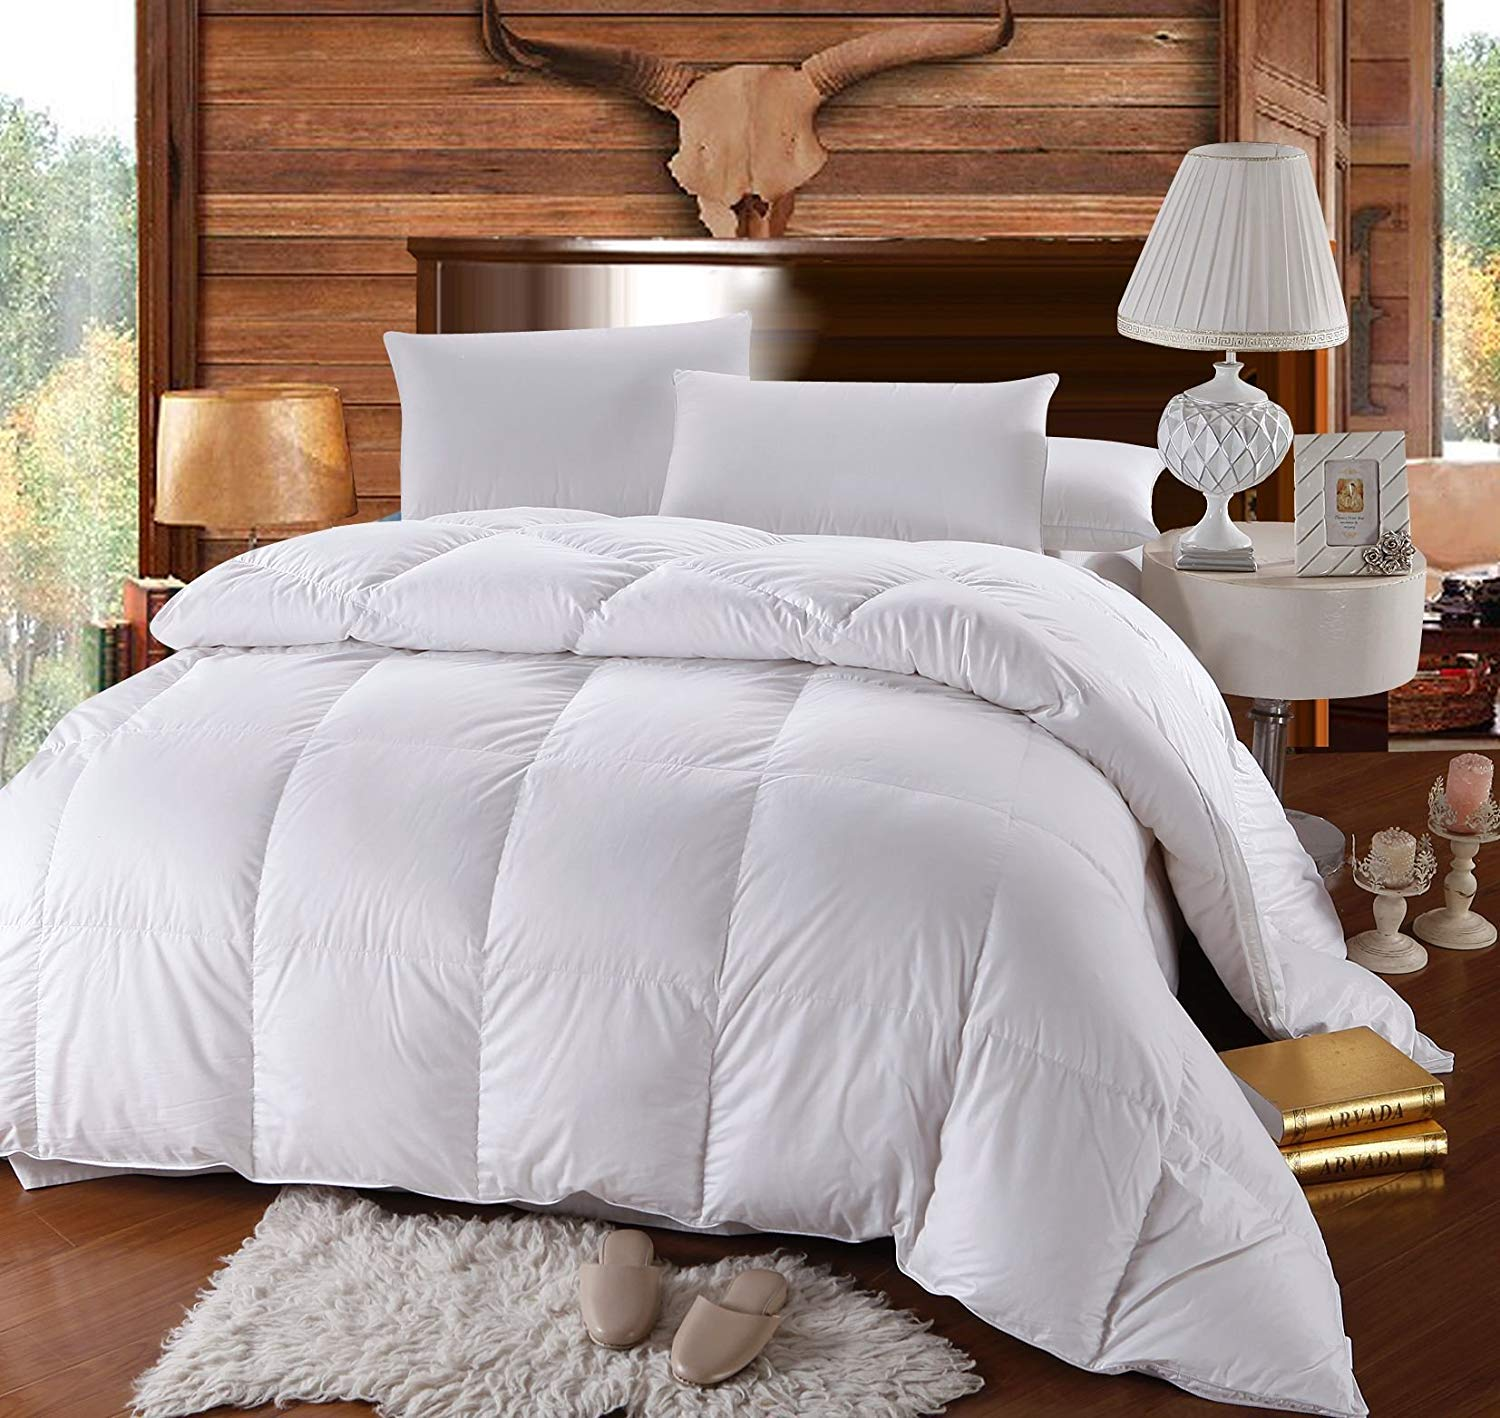 Buy King Size Down Comforter